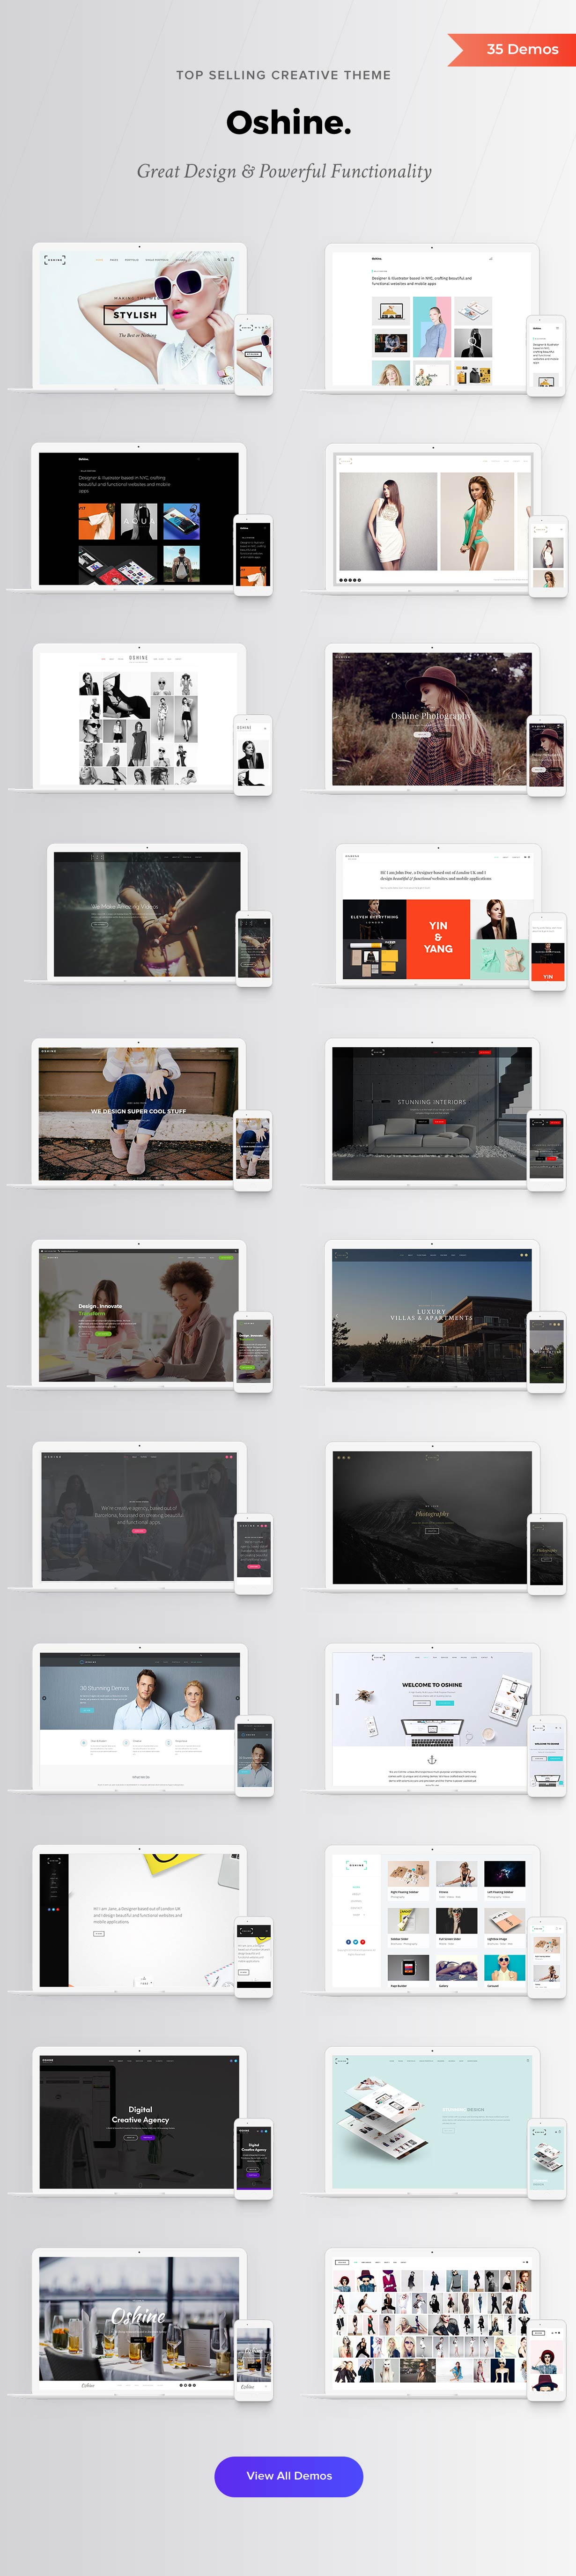 Oshine - Best Creative theme